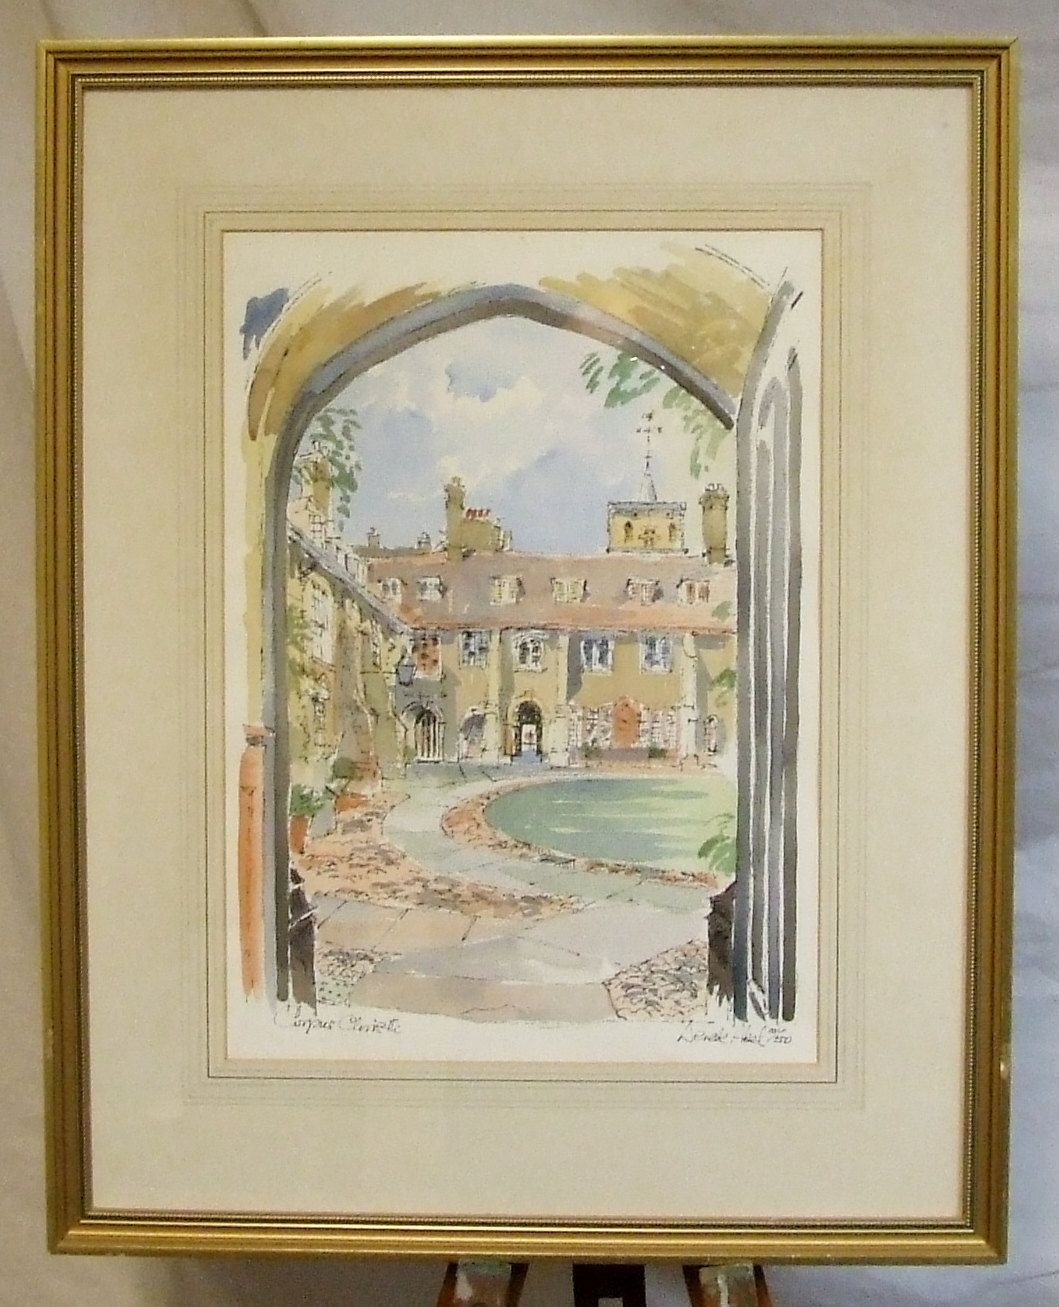 6 Contemporary prints Derek Abel limited edition Corpus Christi College Cambridge University England framed by ElegantPossessions on Etsy